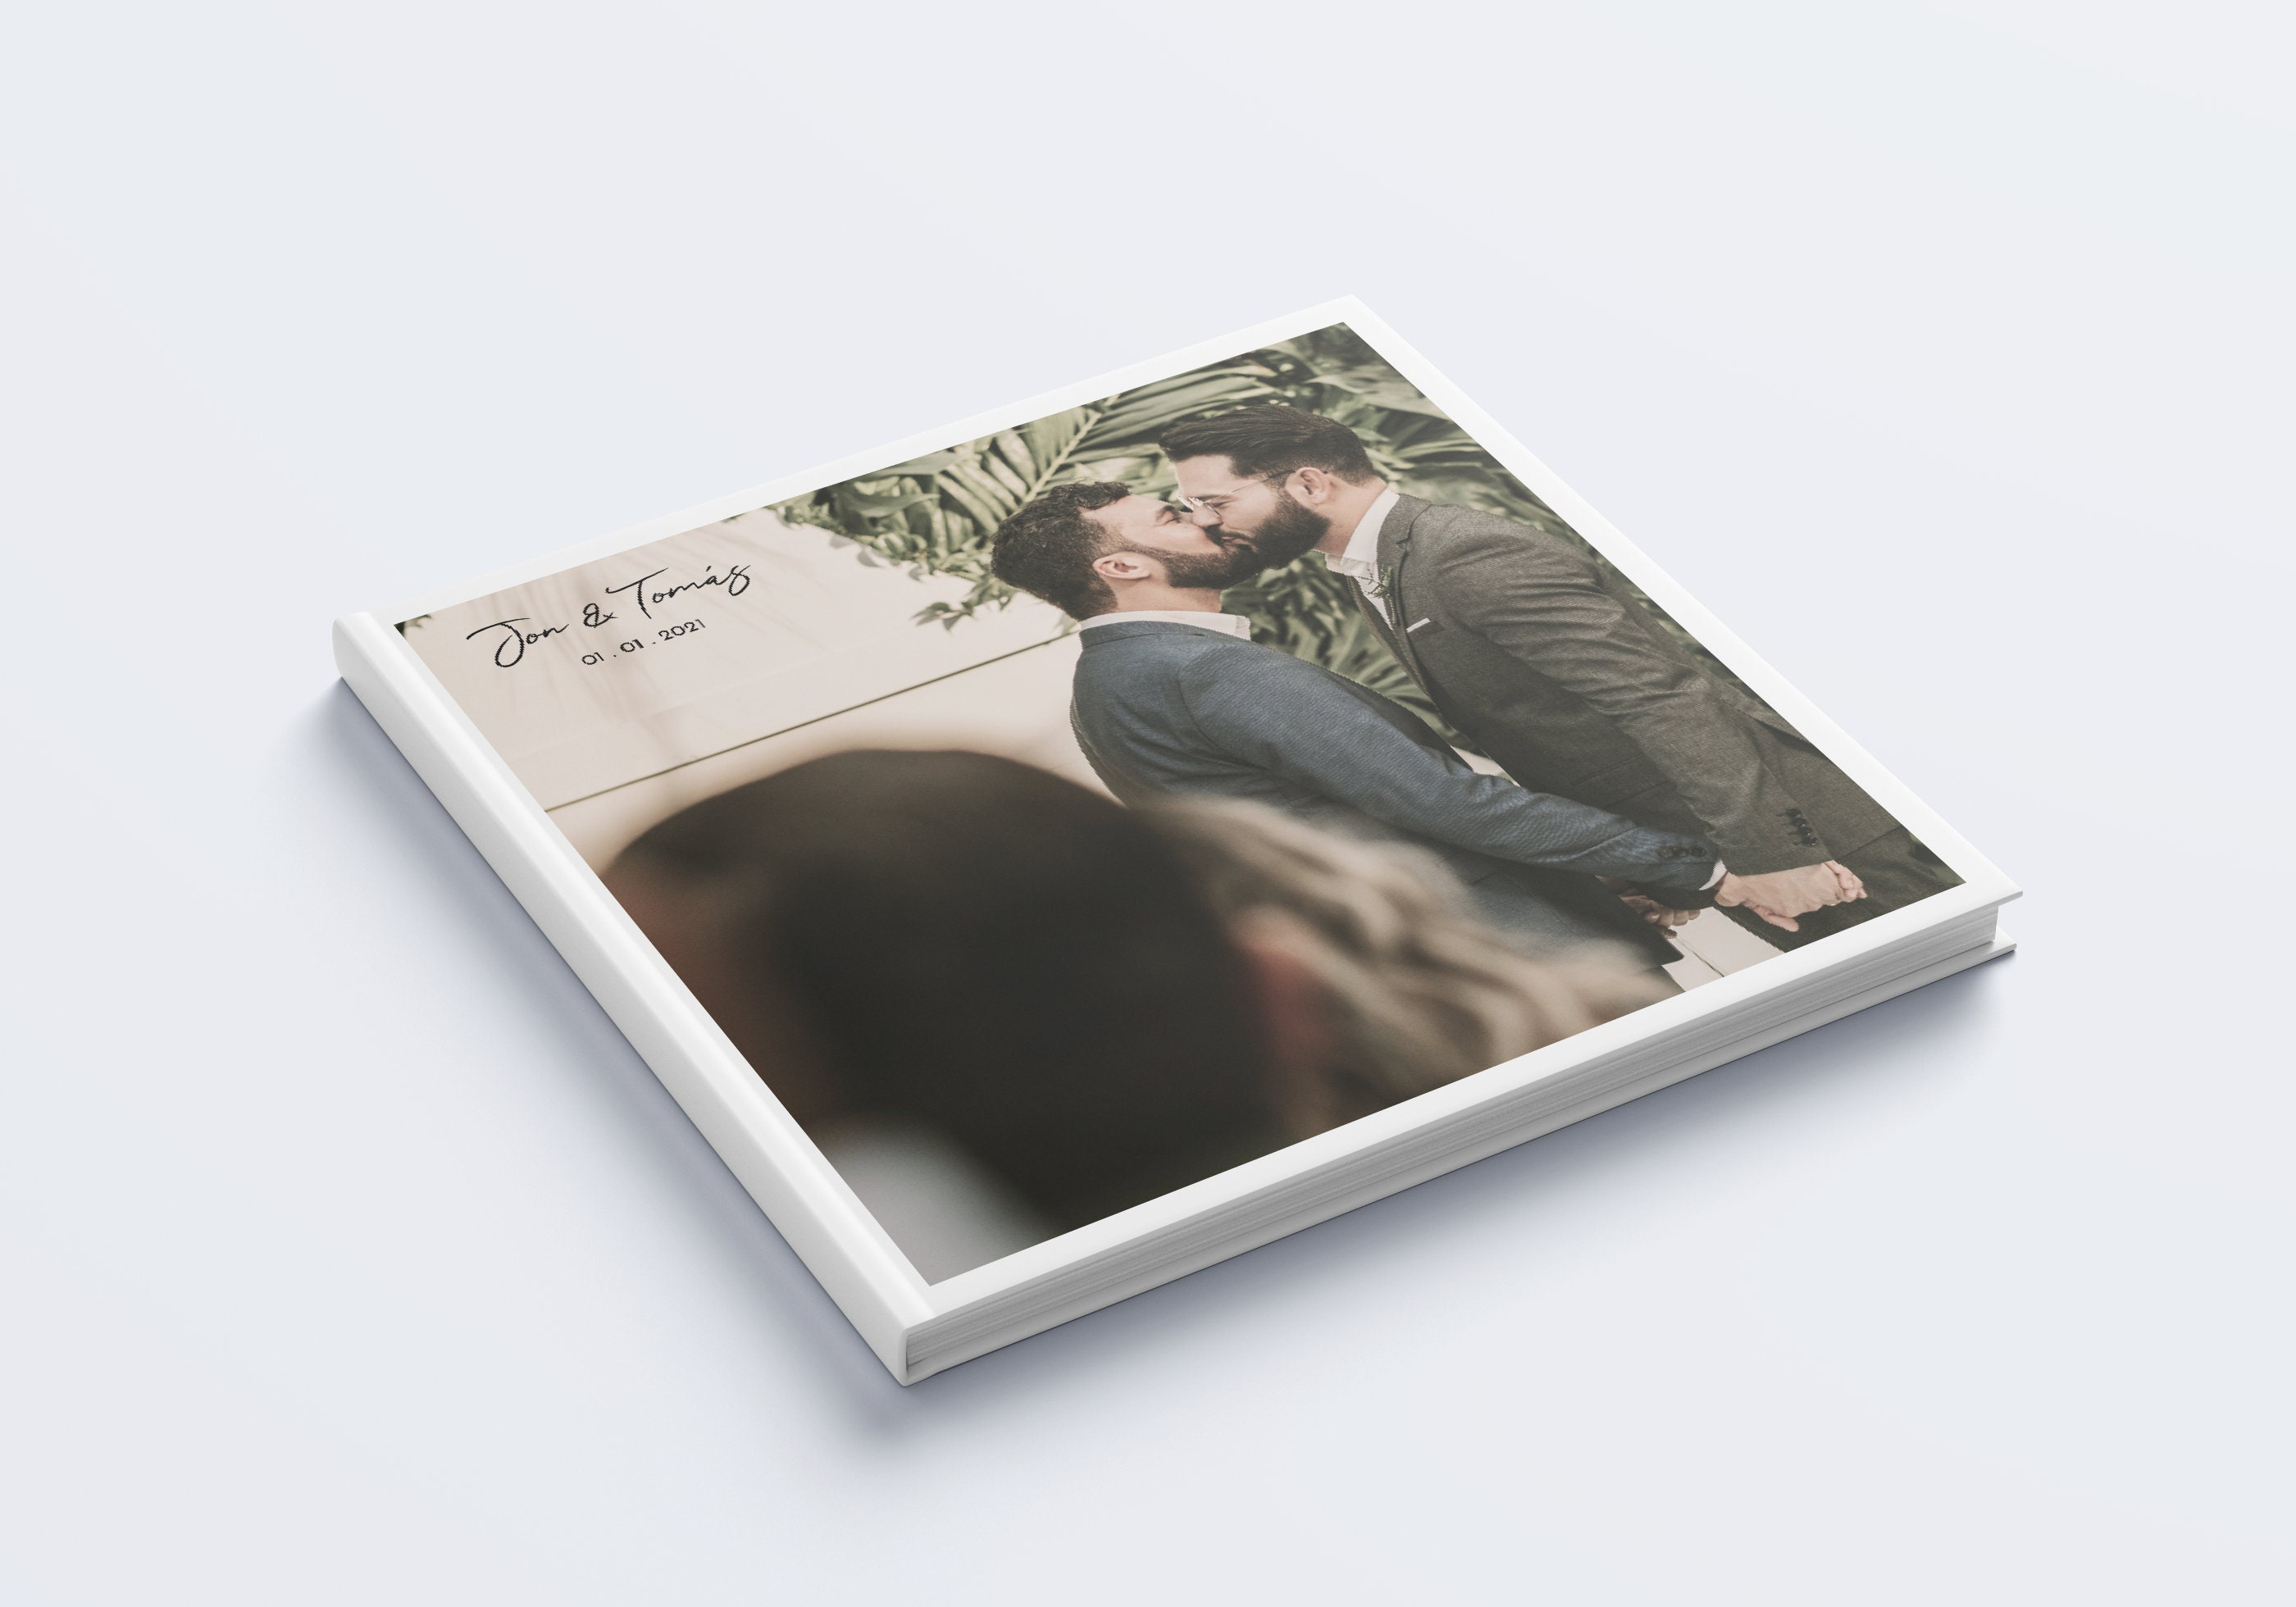 A photograph of a square hardcover book, with a wedding photo printed on the front cover. There is some text overlaying the top left side of the image, with the couples names and wedding date.